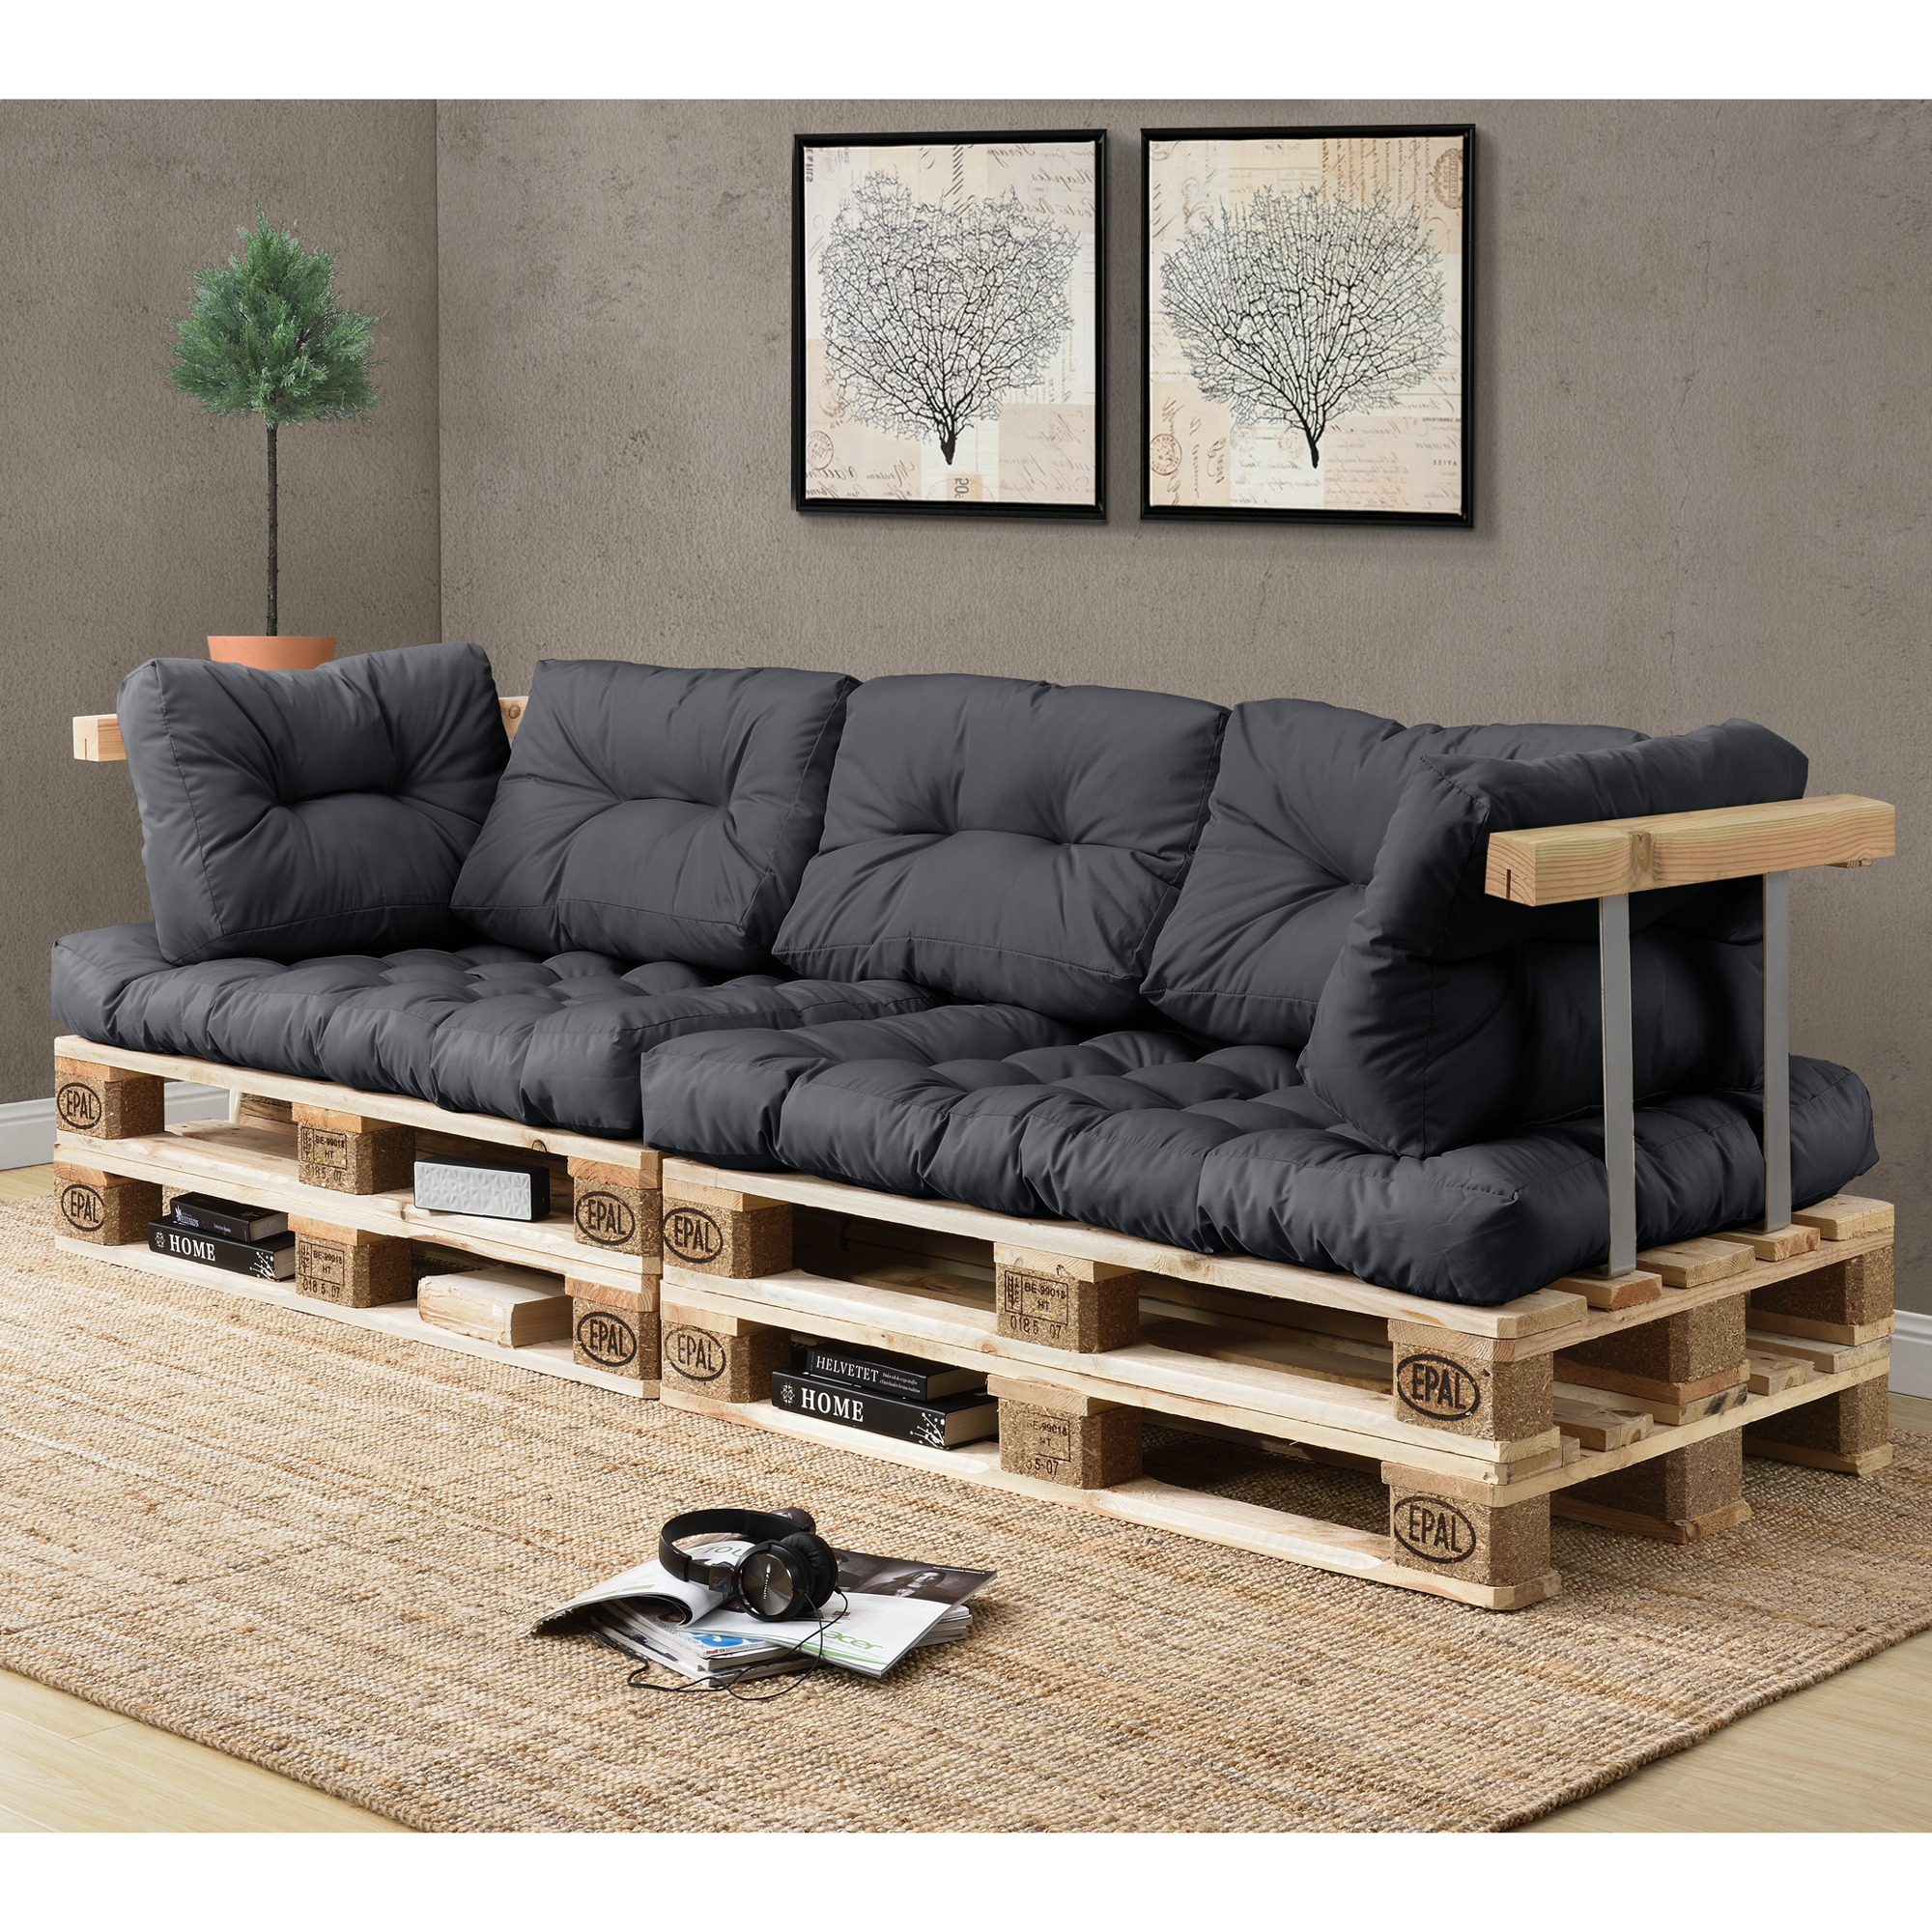 palettenkissen in outdoor paletten kissen sofa polster sitzauflage ebay. Black Bedroom Furniture Sets. Home Design Ideas